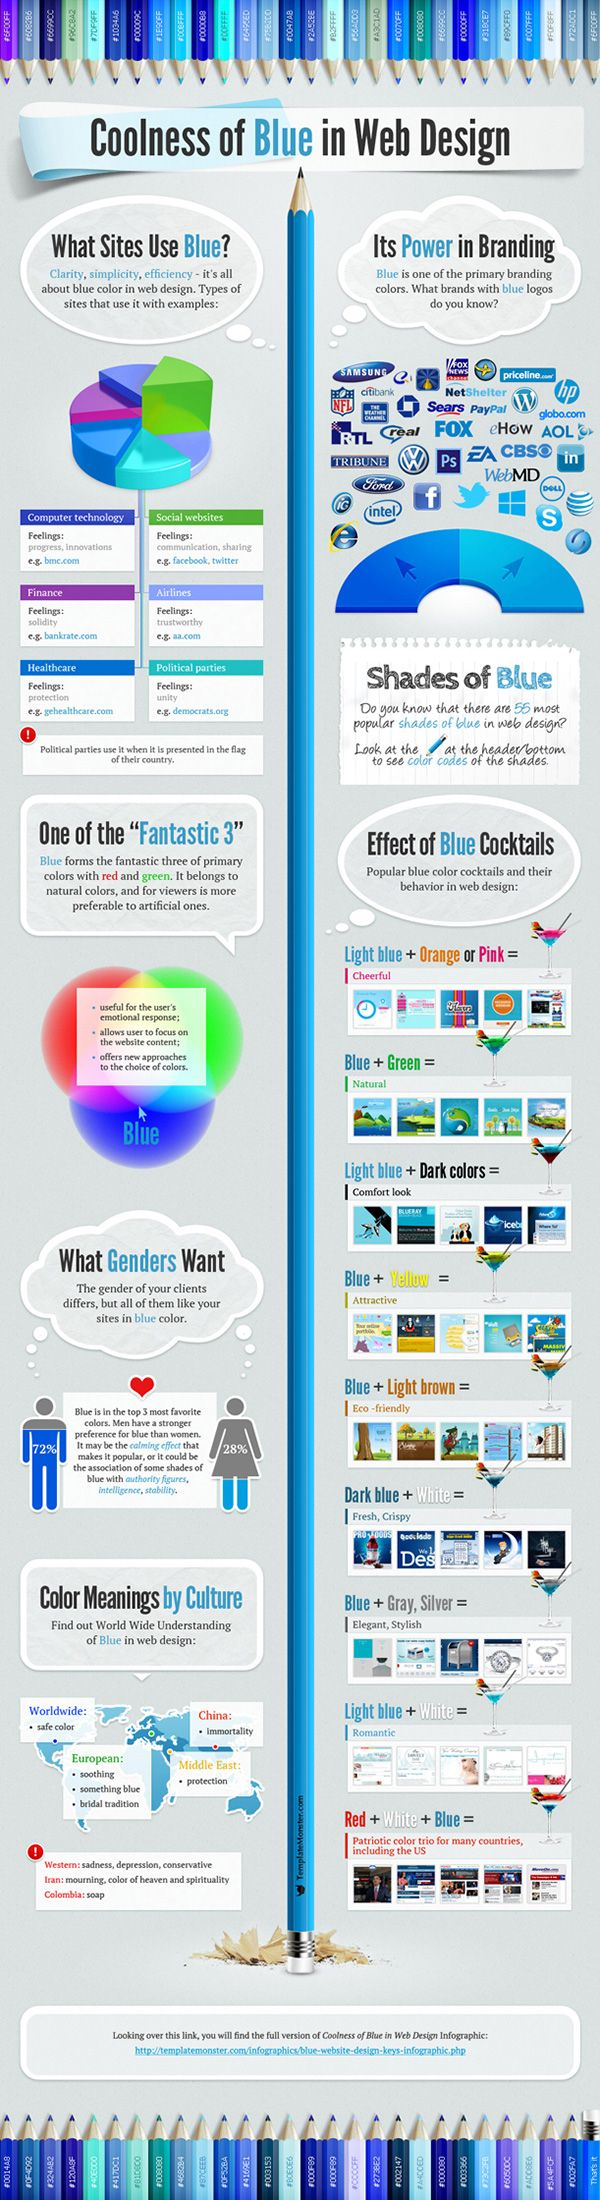 Website rgb colors -  Blue In Web Design This Infographic Teaches About The Color Blue